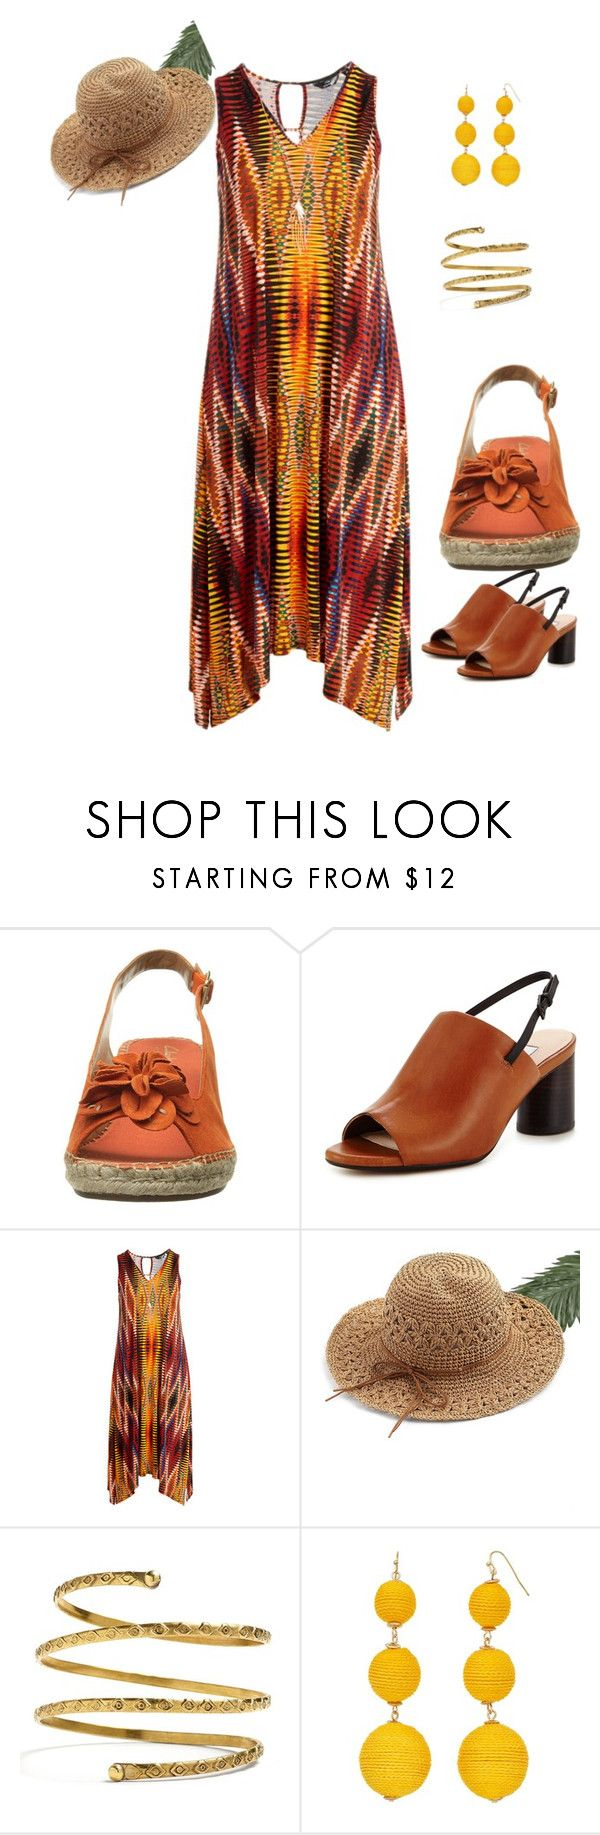 """""""Maxi Style"""" by gyhulm on Polyvore featuring Clarks, WithChic, Venus, brown, clarks and plus size dresses"""